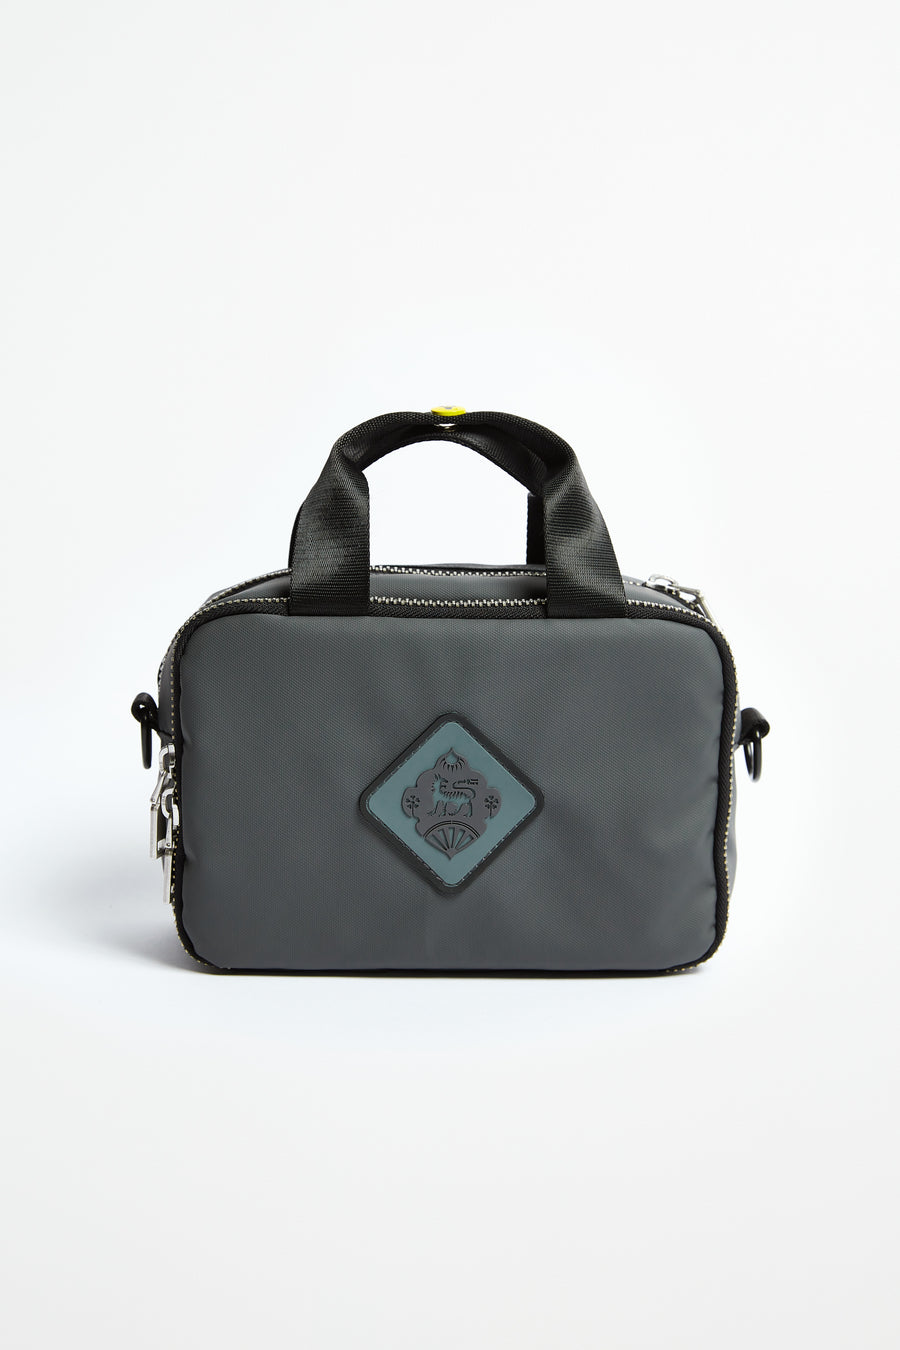 Destiny Europa Industrial Crossbody Bag